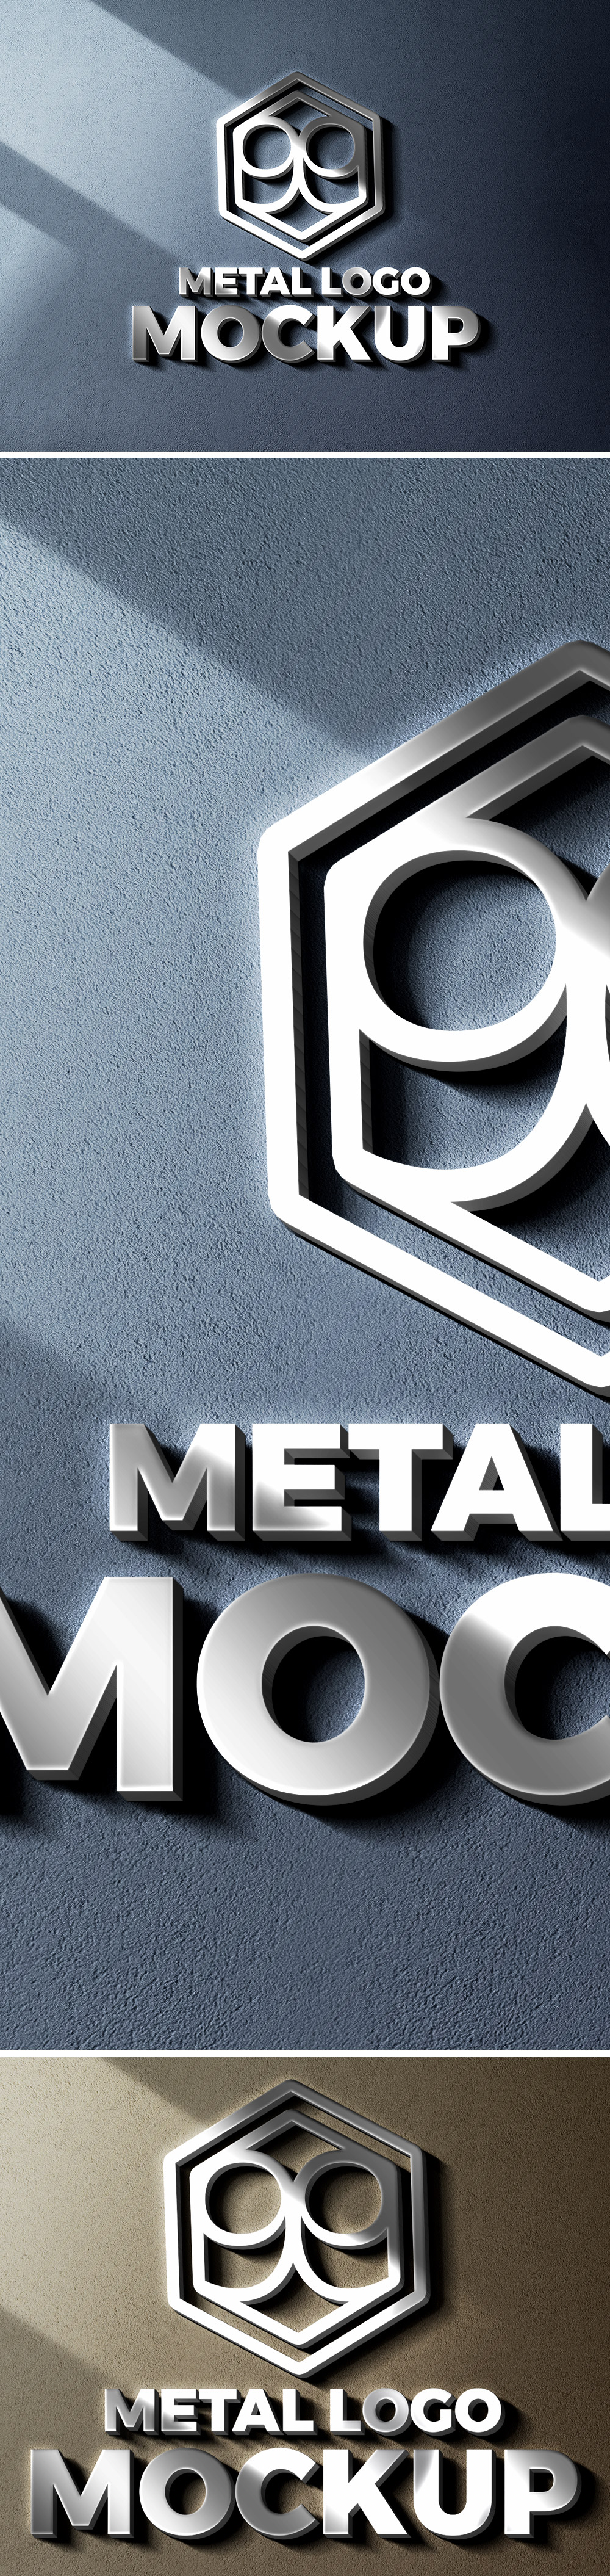 Metal Cut Logo Mockup